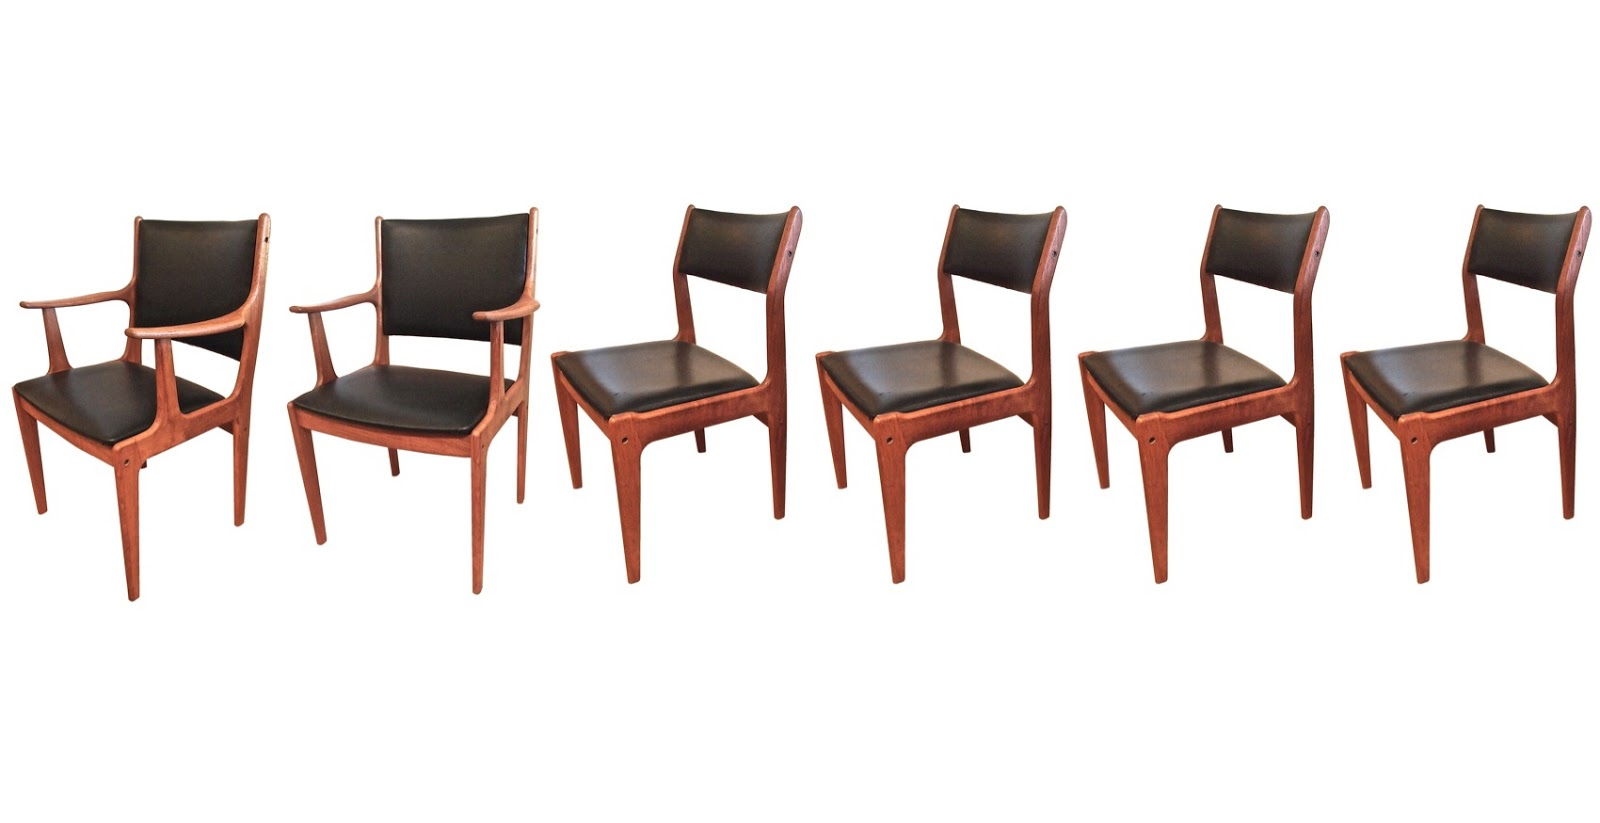 Dining chairs showroom montr al for Chaises eames montreal